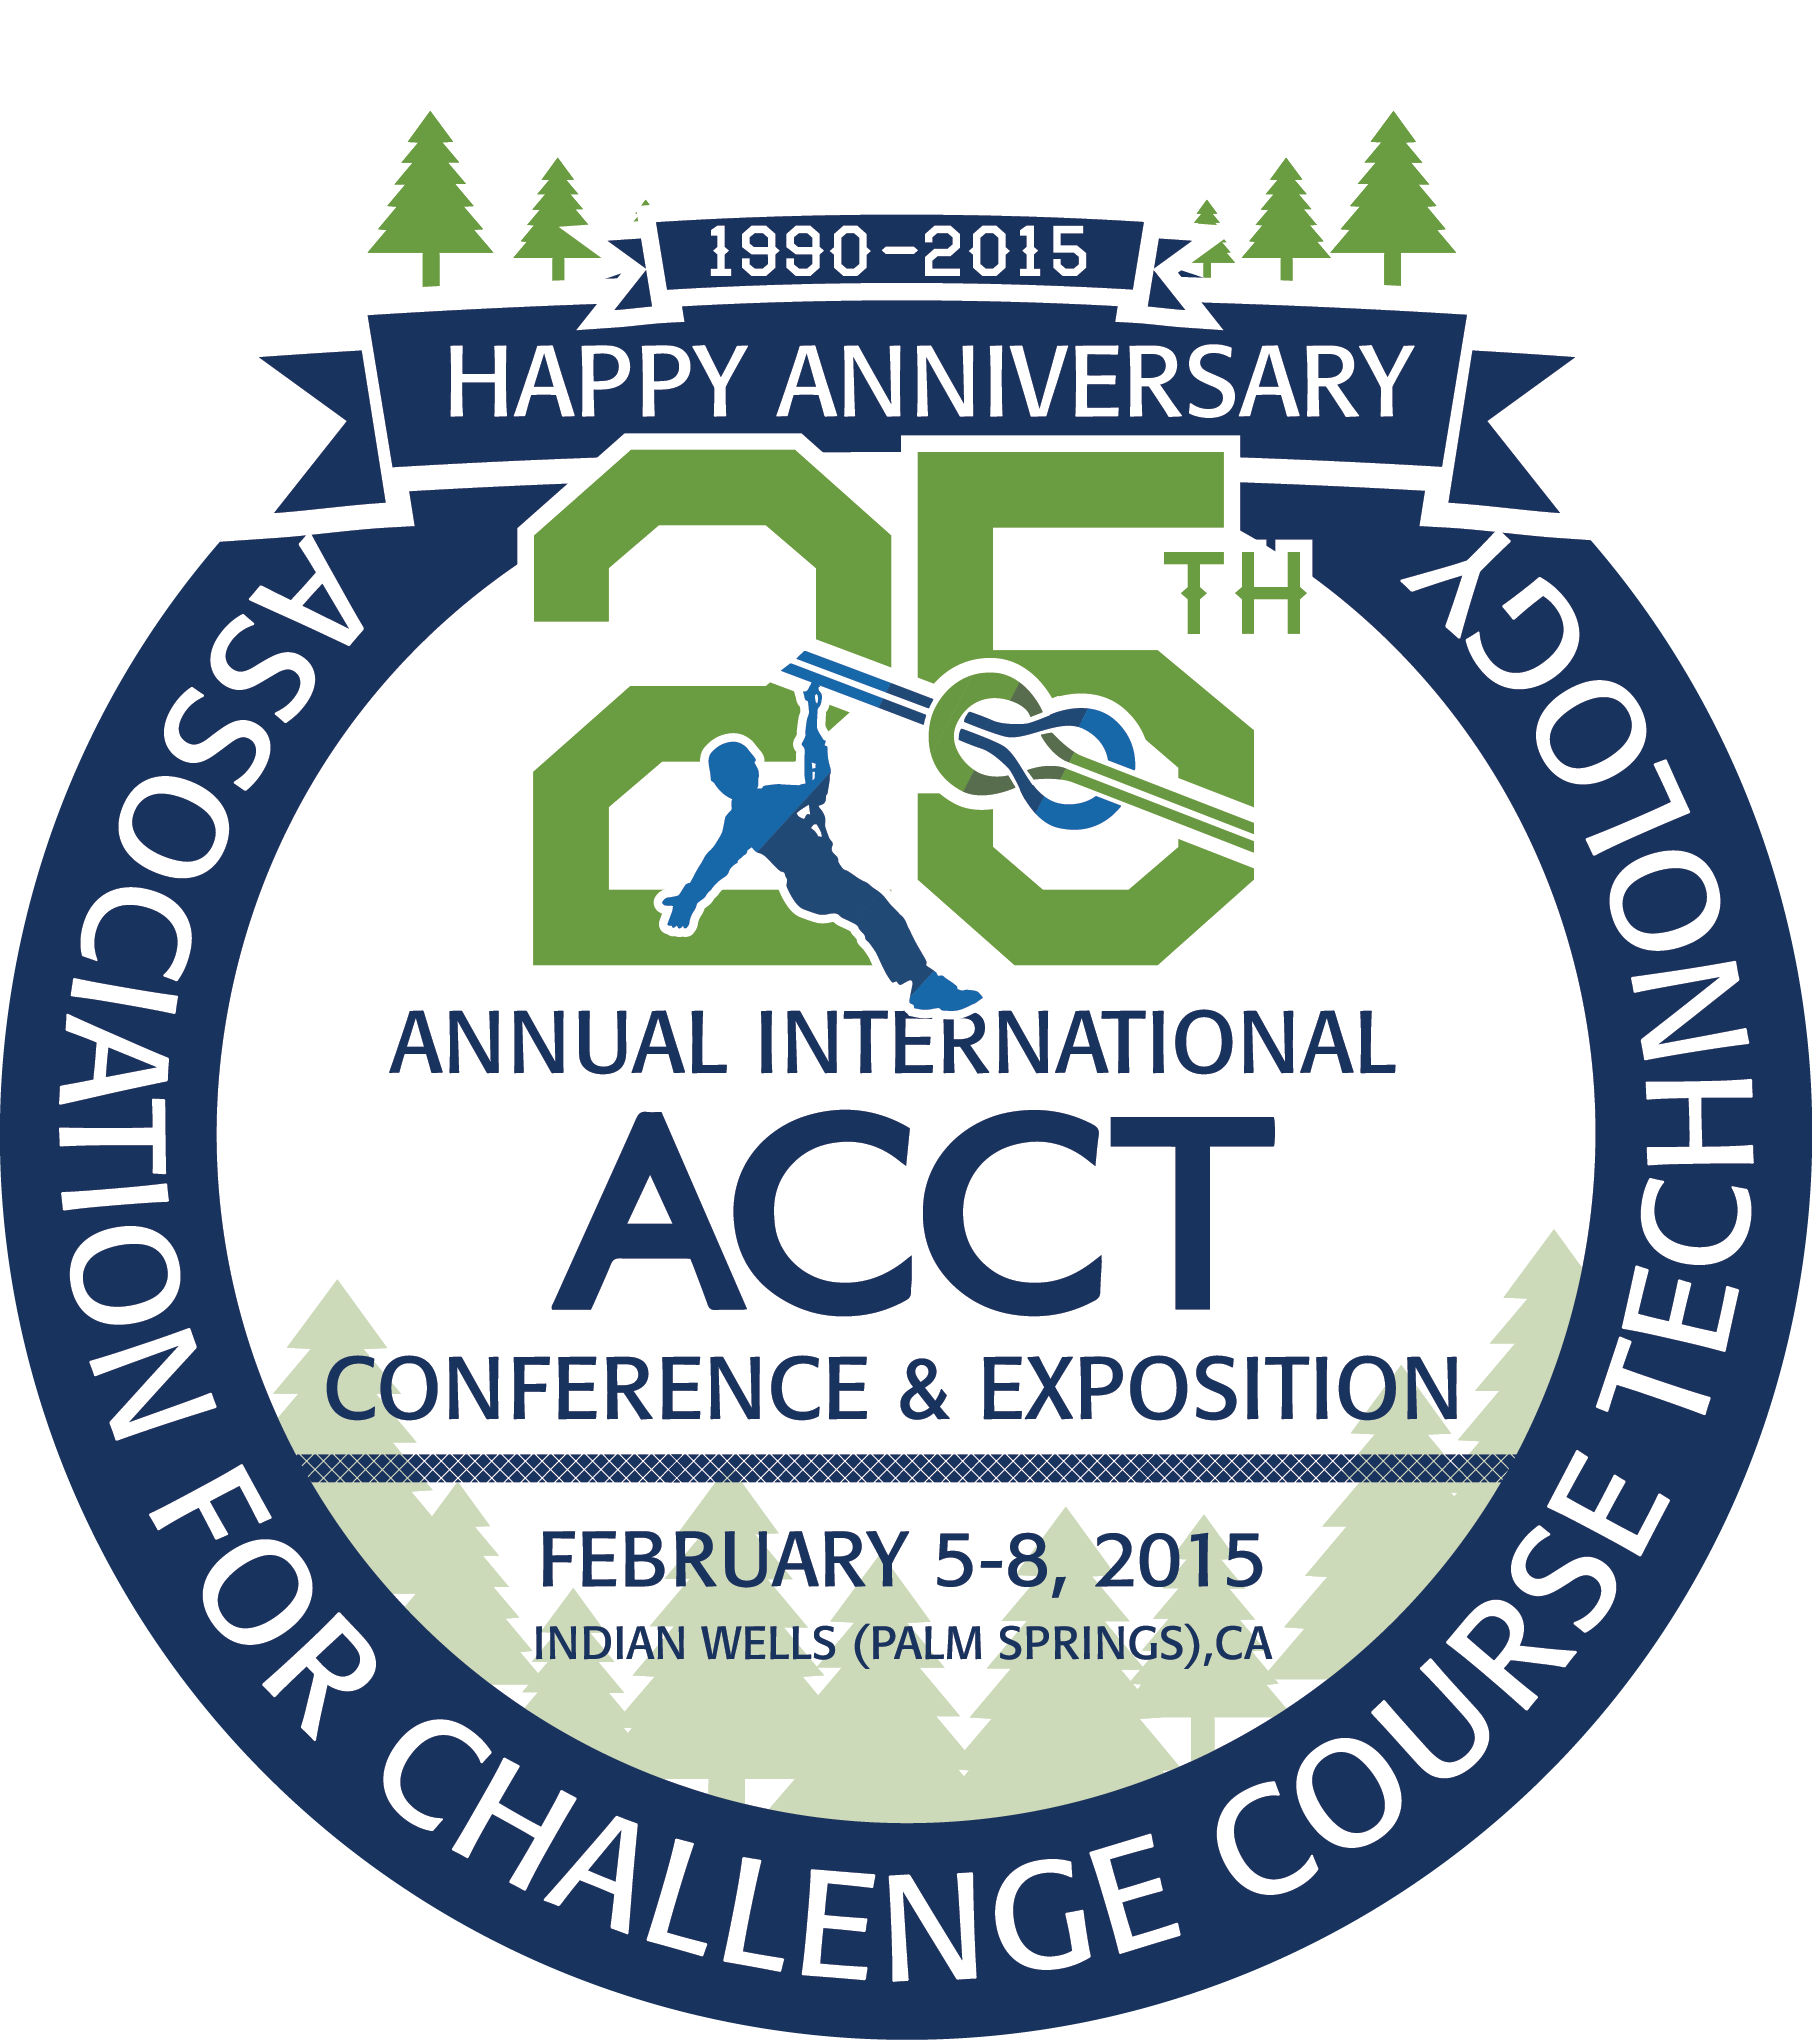 http://acctconference.com/wp-content/uploads/2014/09/ACCT-Logo.png